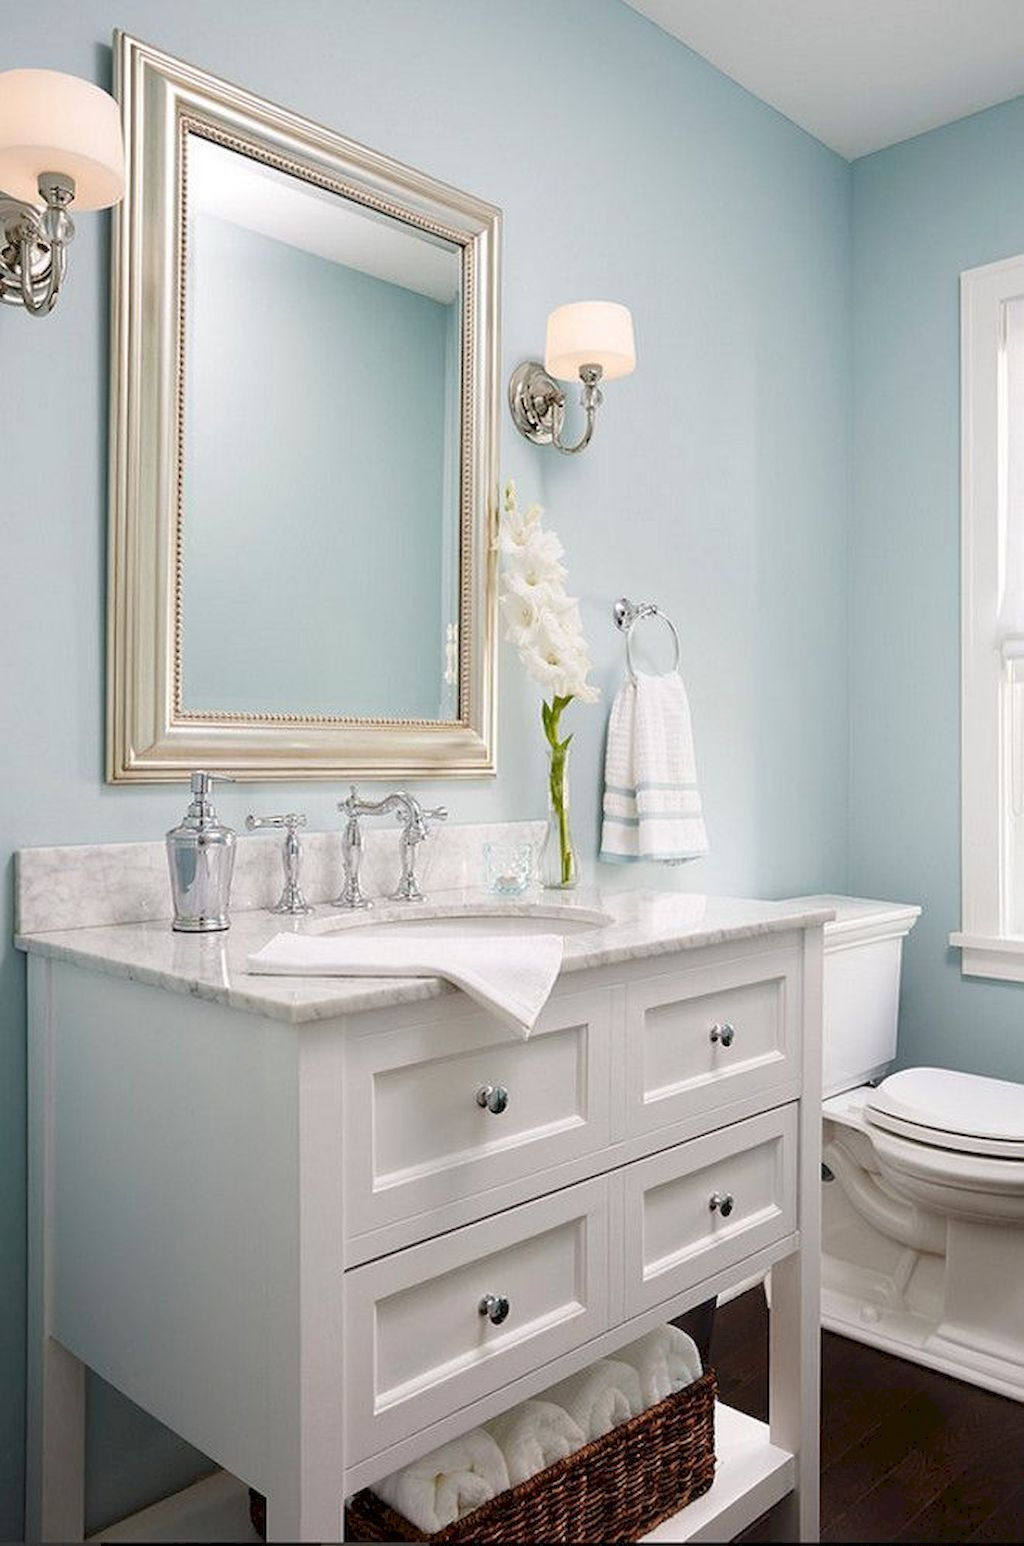 80 Guest Bathroom Makeover Decor Ideas On A Budget Light Blue Bathroom Blue Bathroom Decor